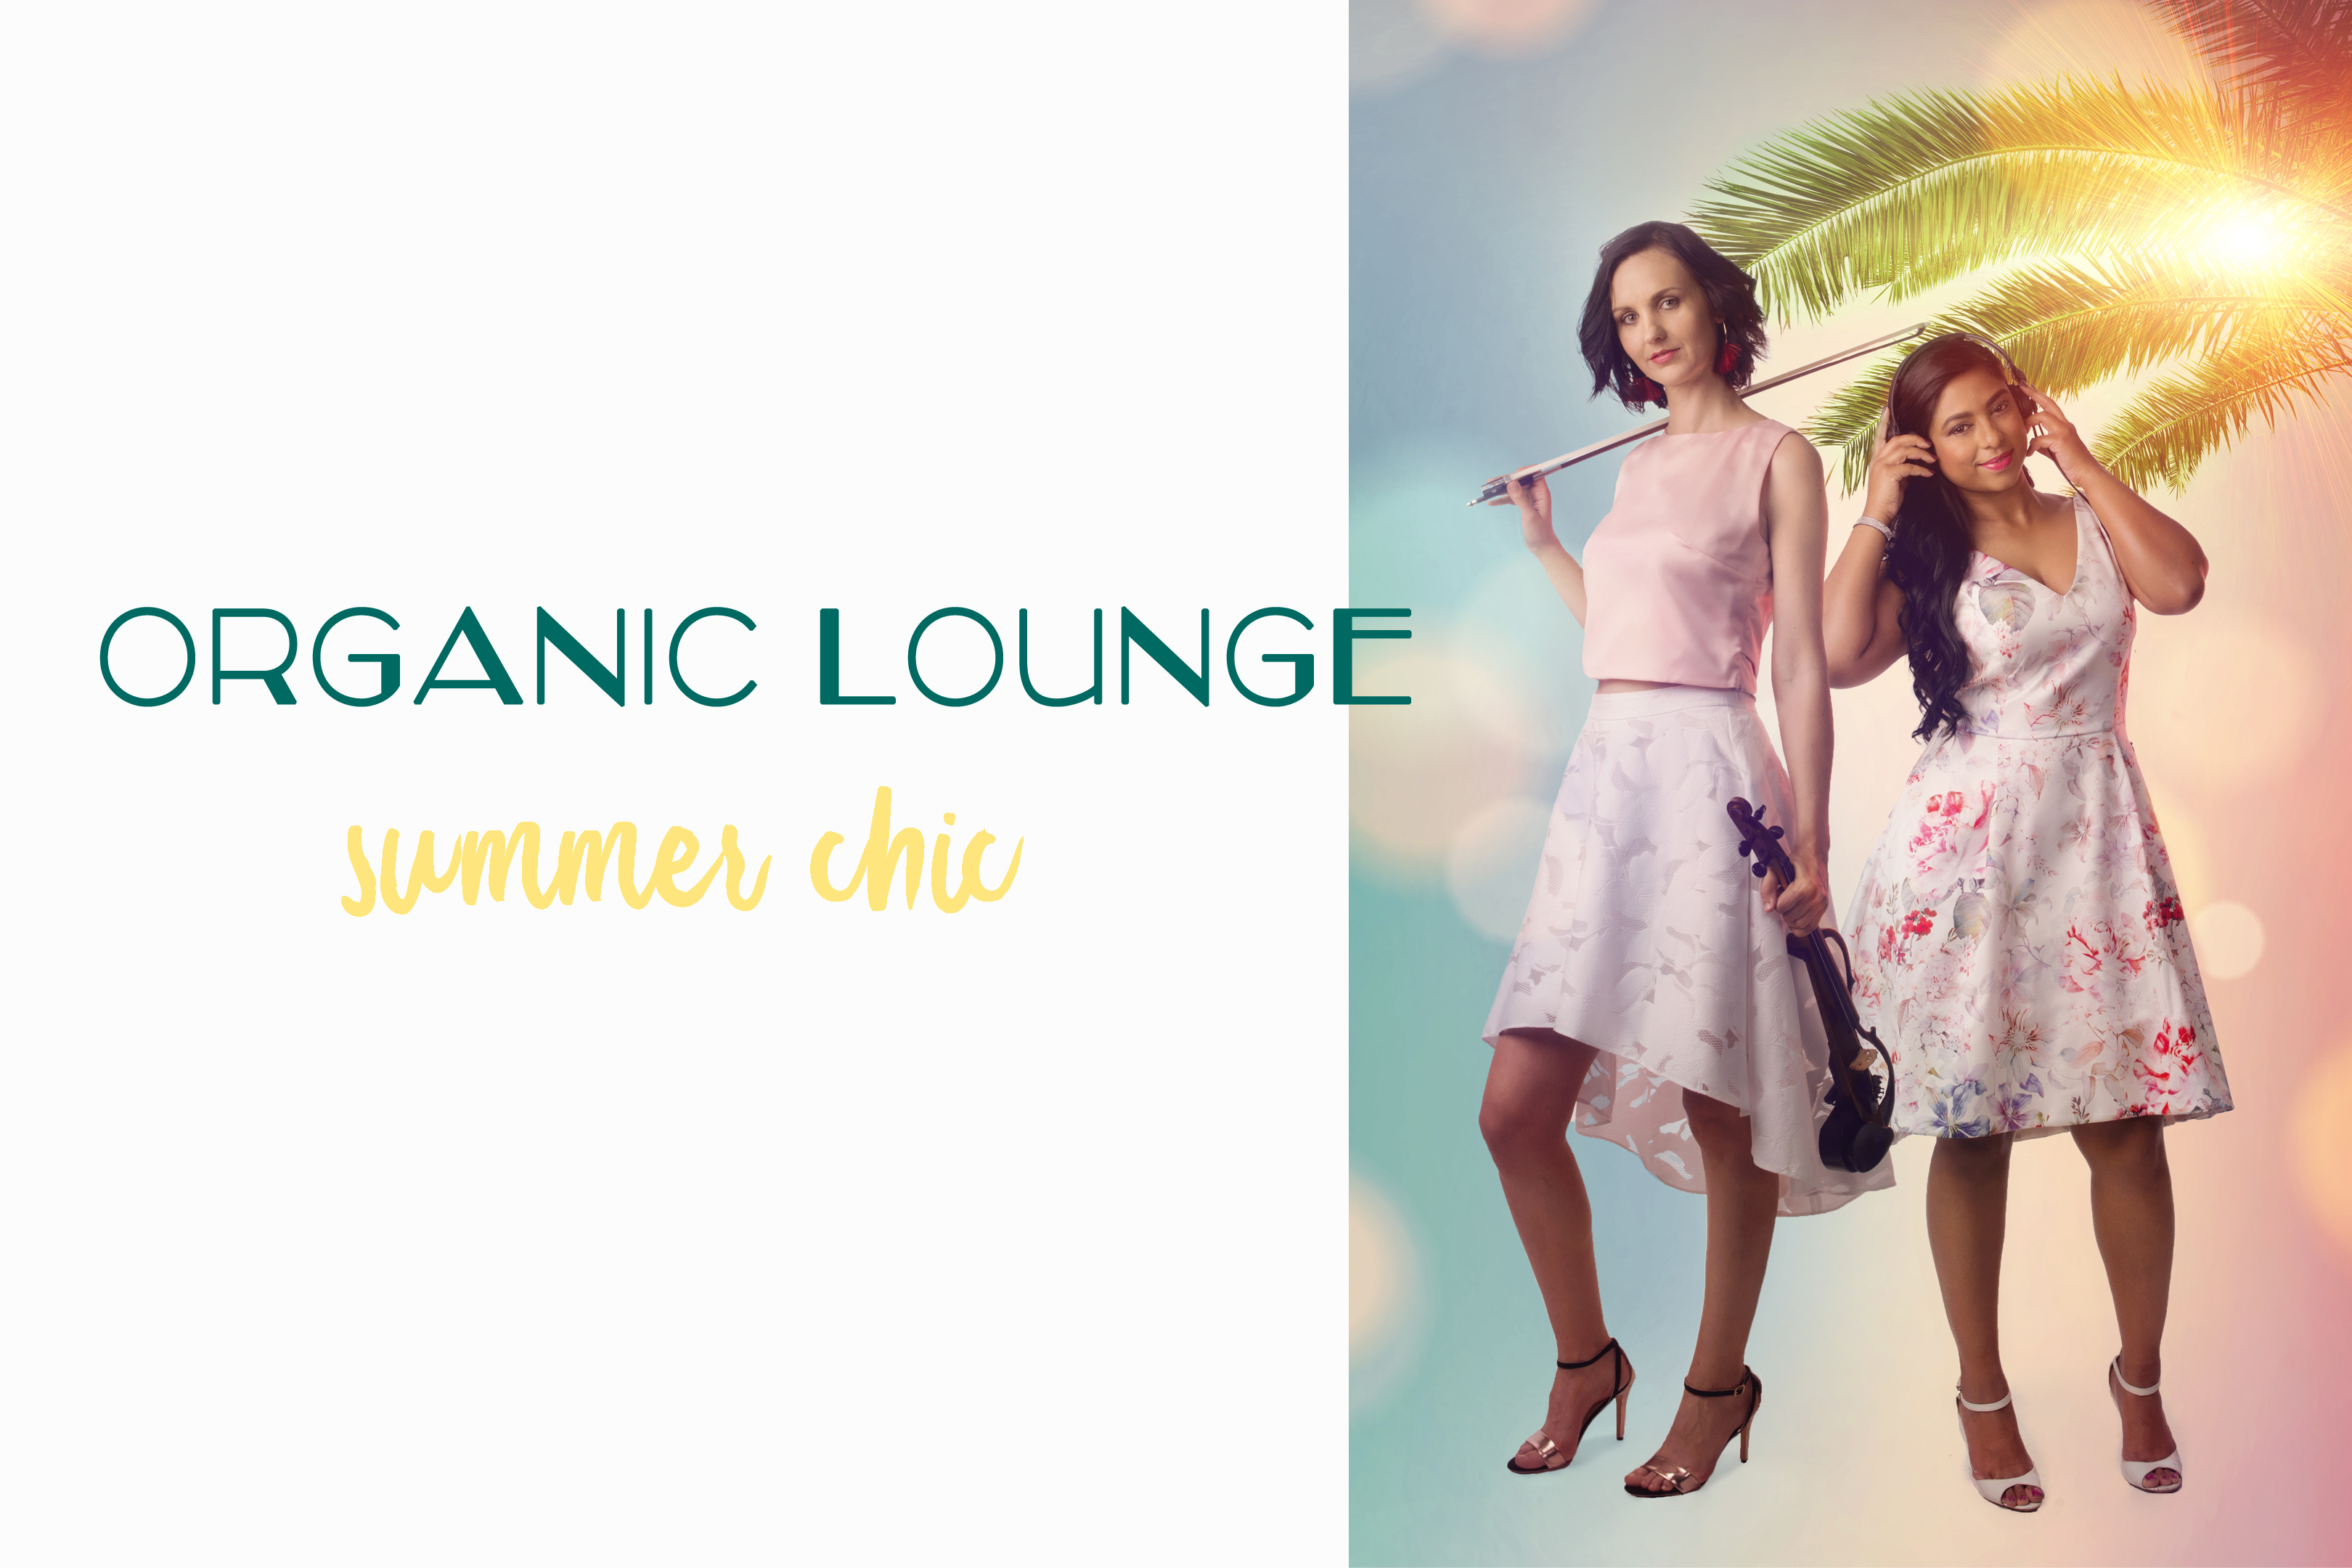 Organic Lounge Summer Chic